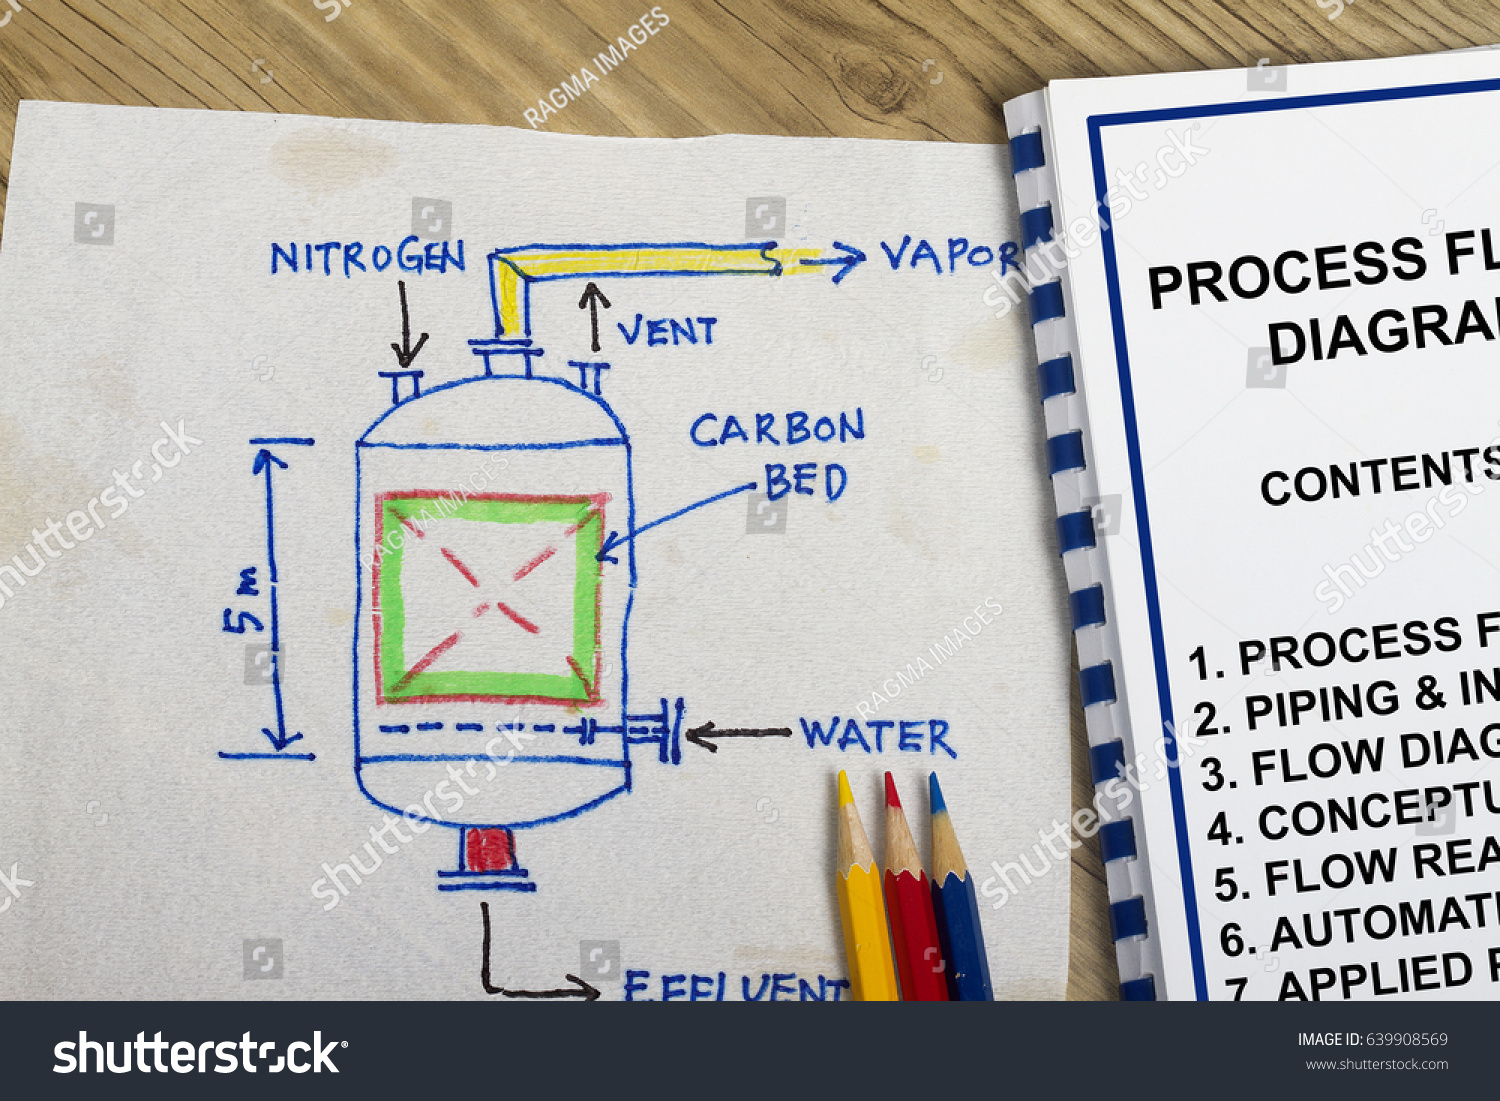 Process Flow Diagram Concept Many Uses Stock Photo Edit Now Requirements In The Oil And Gas Industry